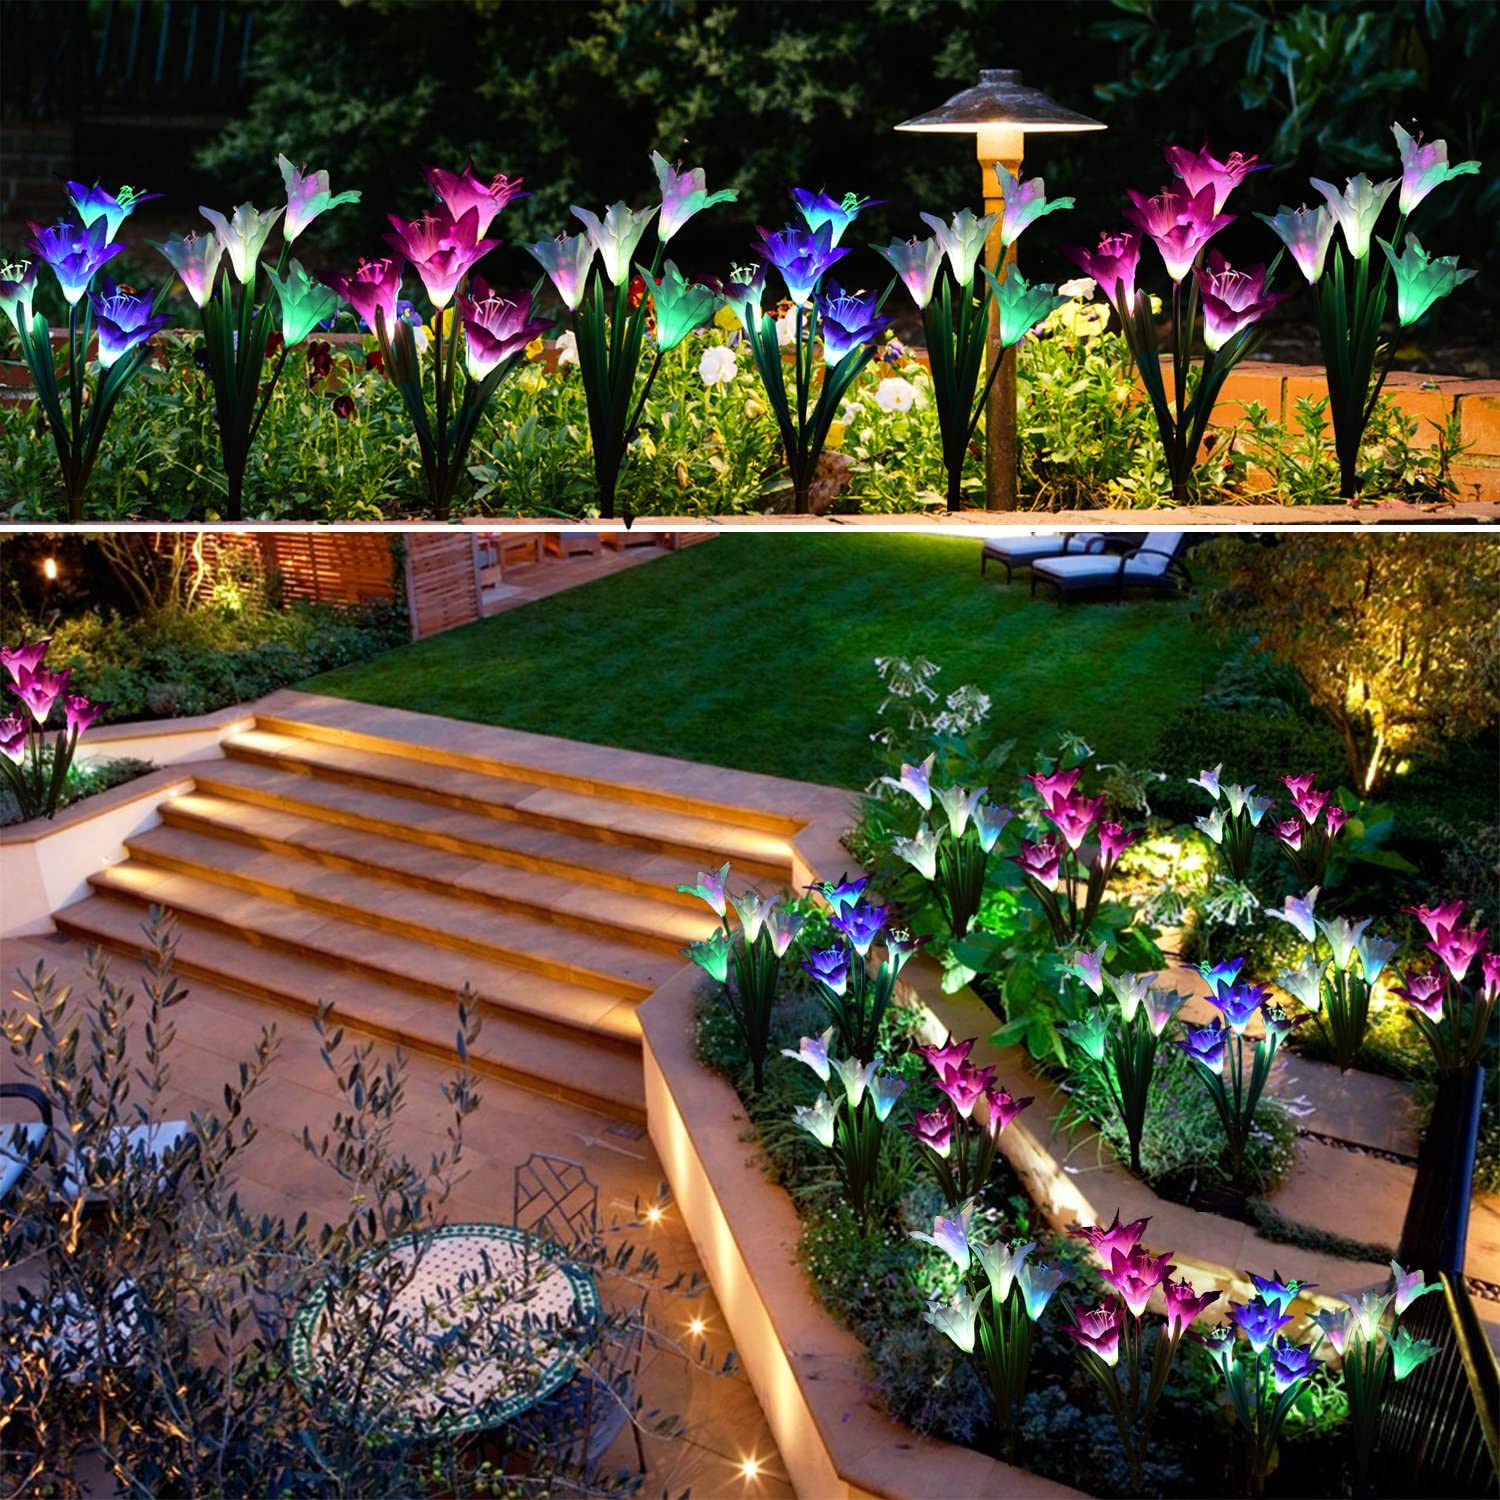 Solar Powered Flower Yard Lights - Solar lily flower lights for lighting pathway